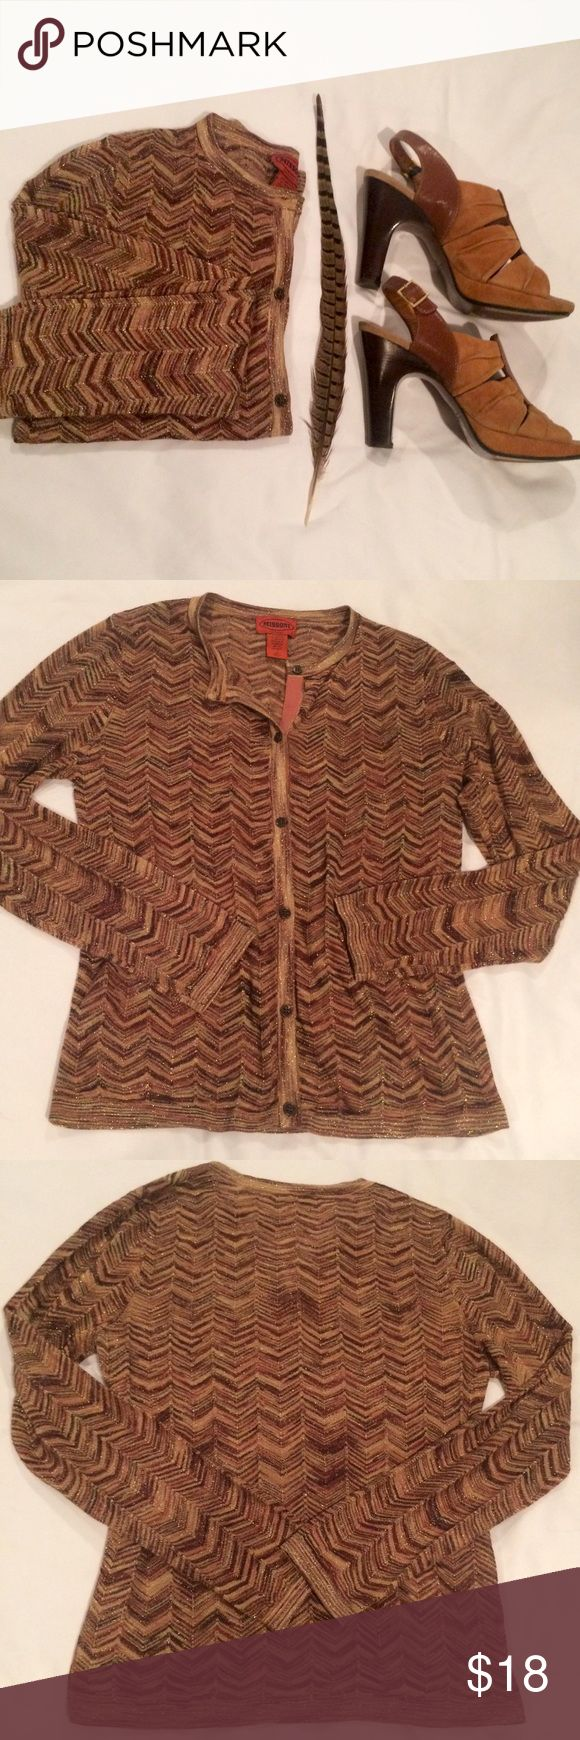 Missoni for Target Metallic Cardigan, size Medium. New without tags- Never Worn. Missoni for Target Metallic Cardigan, size Medium. In excellent condition! Sweaters Cardigans